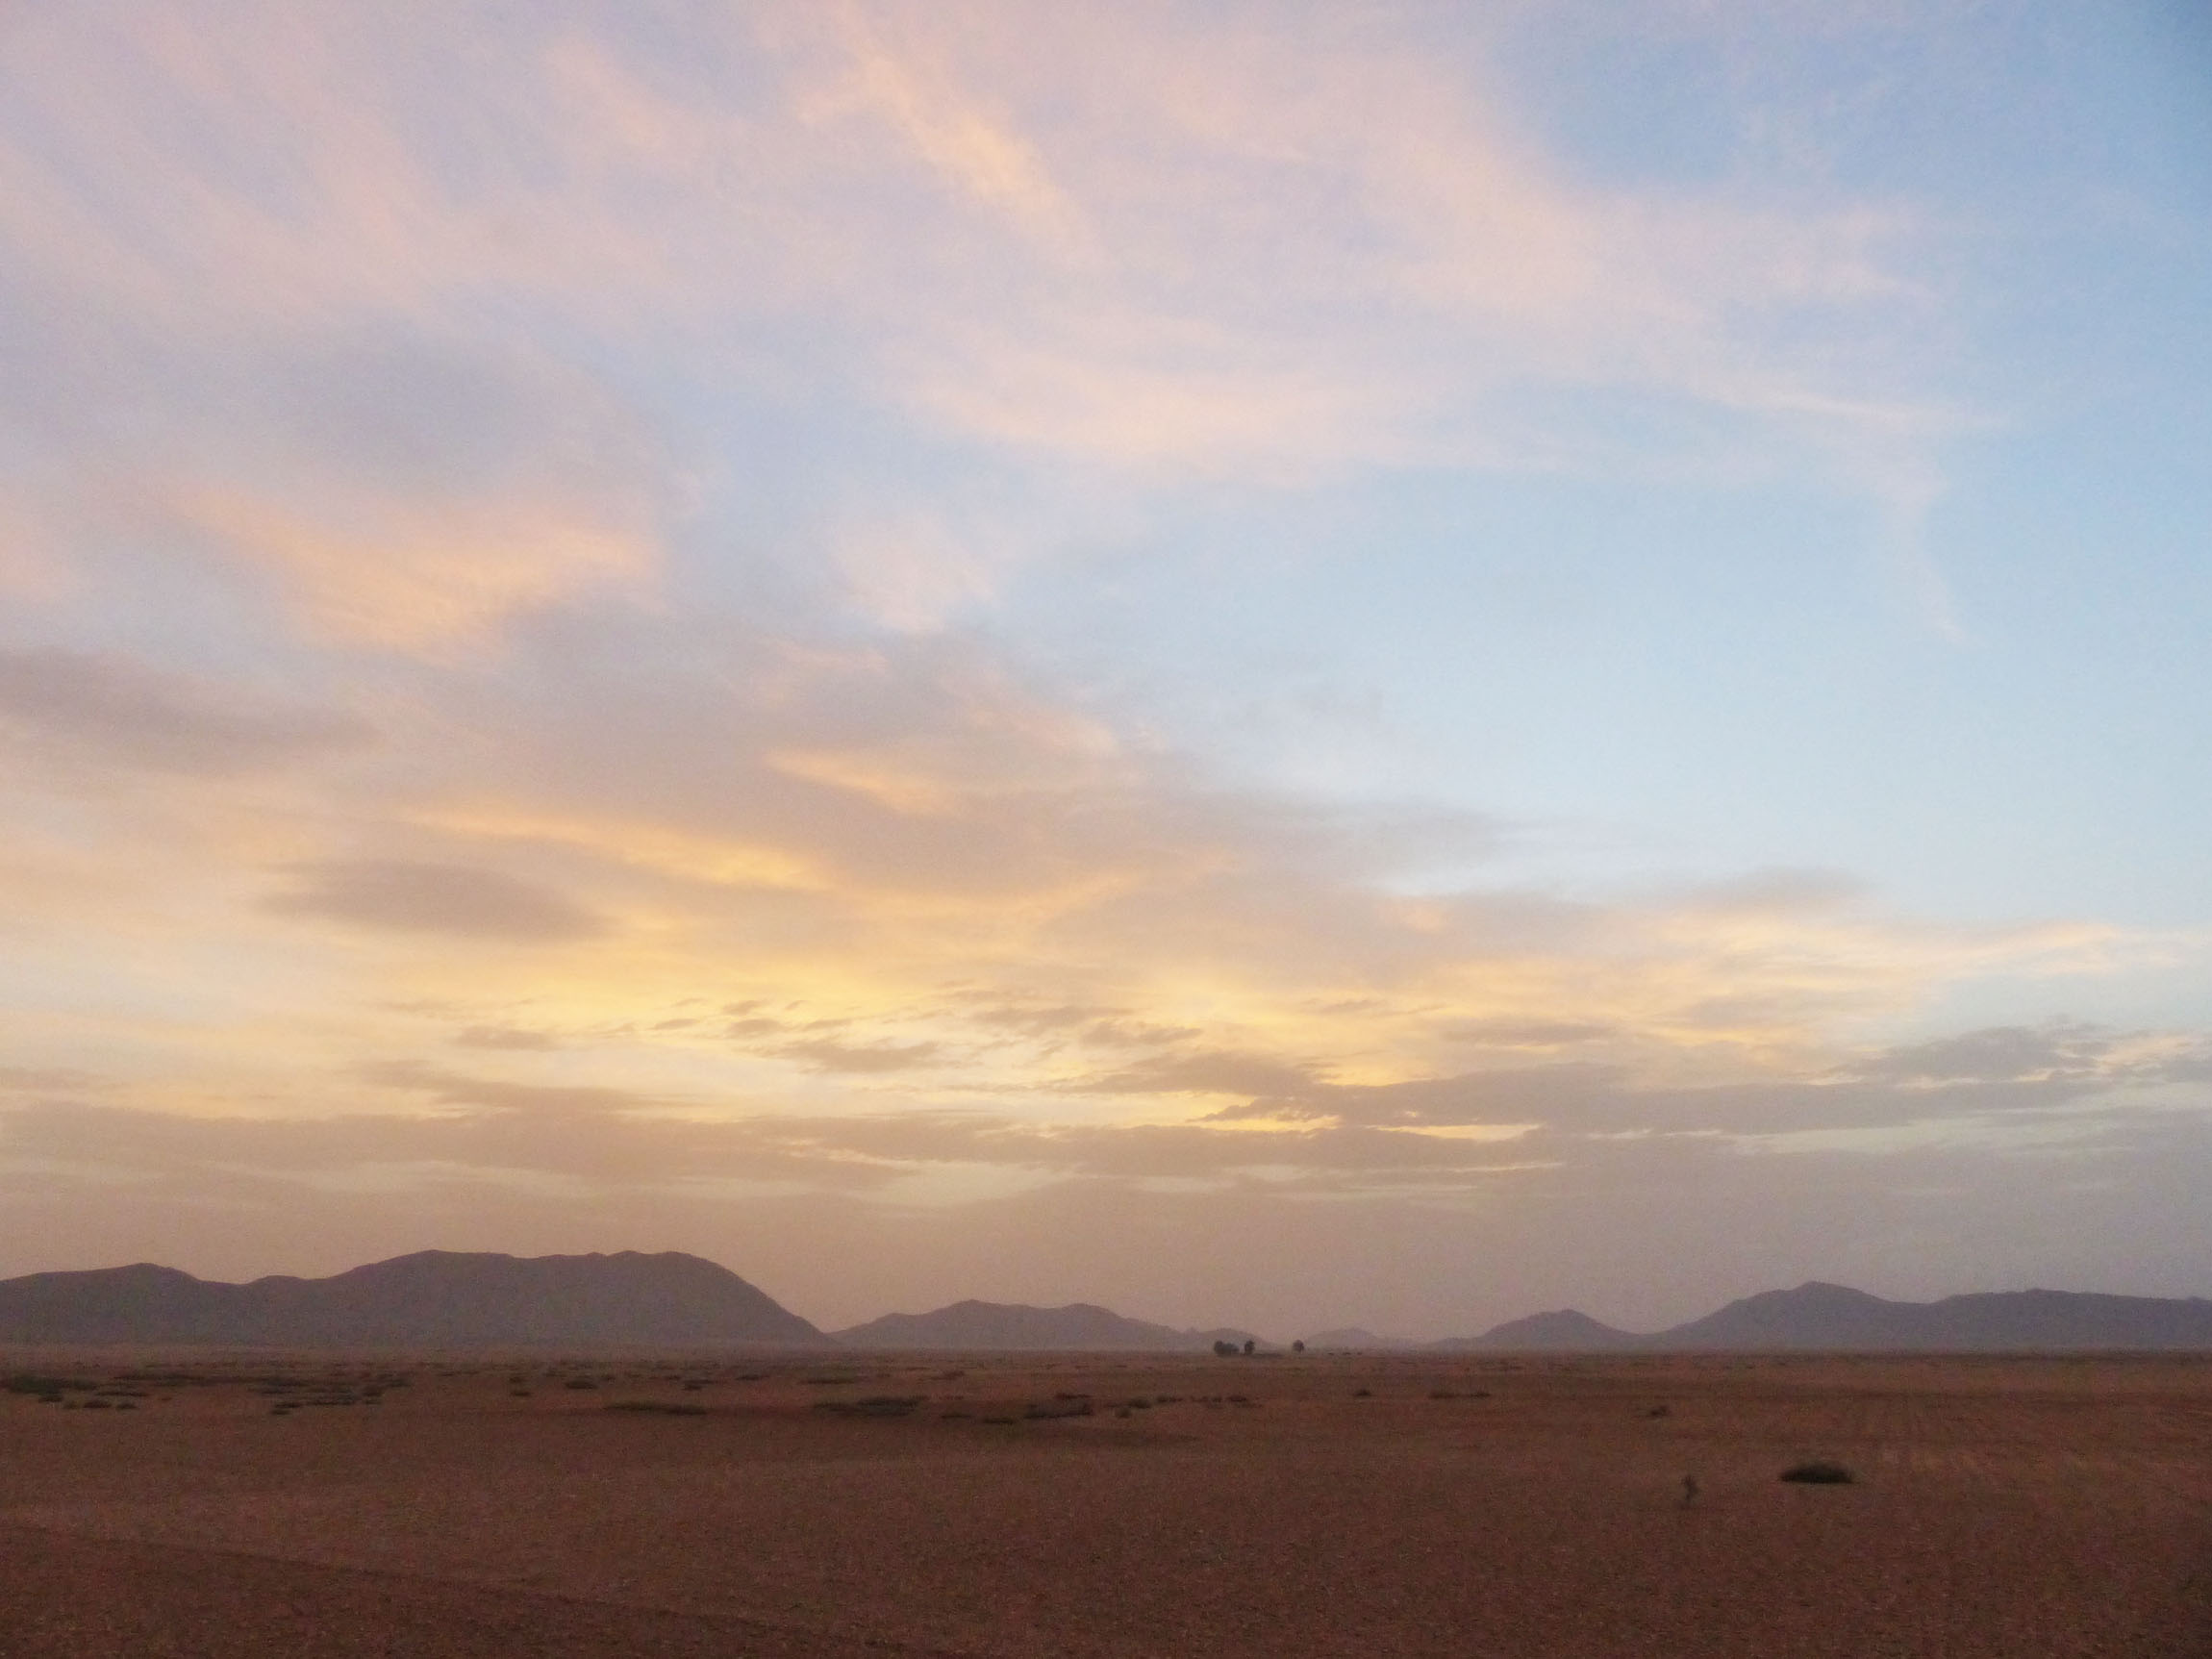 Desert view with early sun